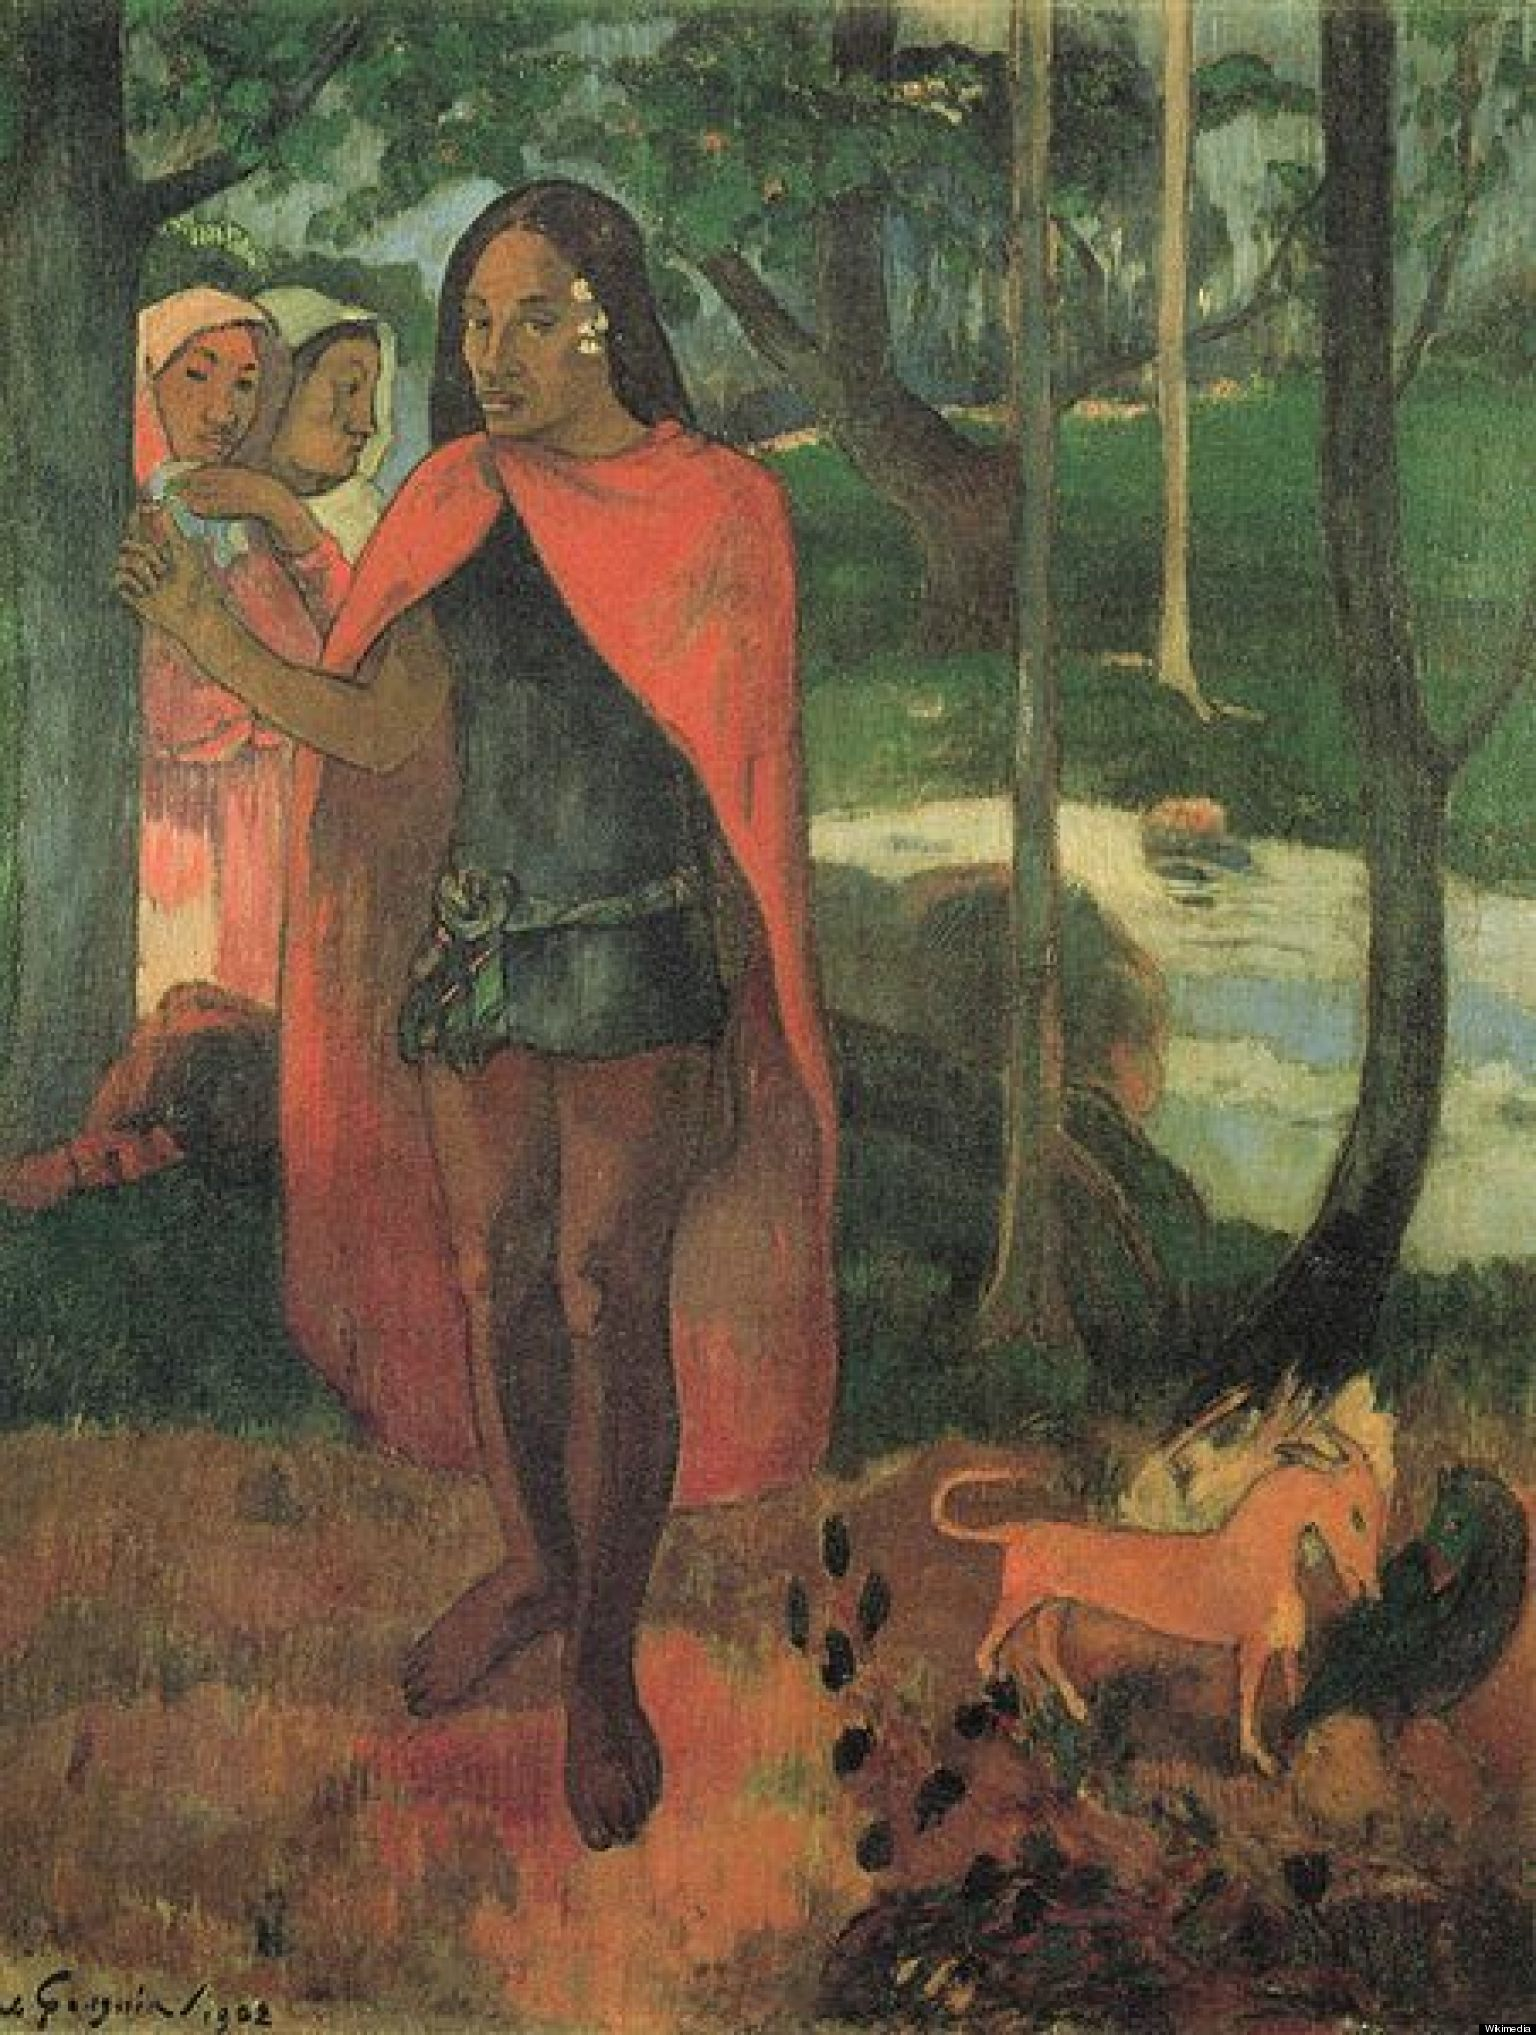 Russell Erxleben Amp Gauguin Painting Come Together In The